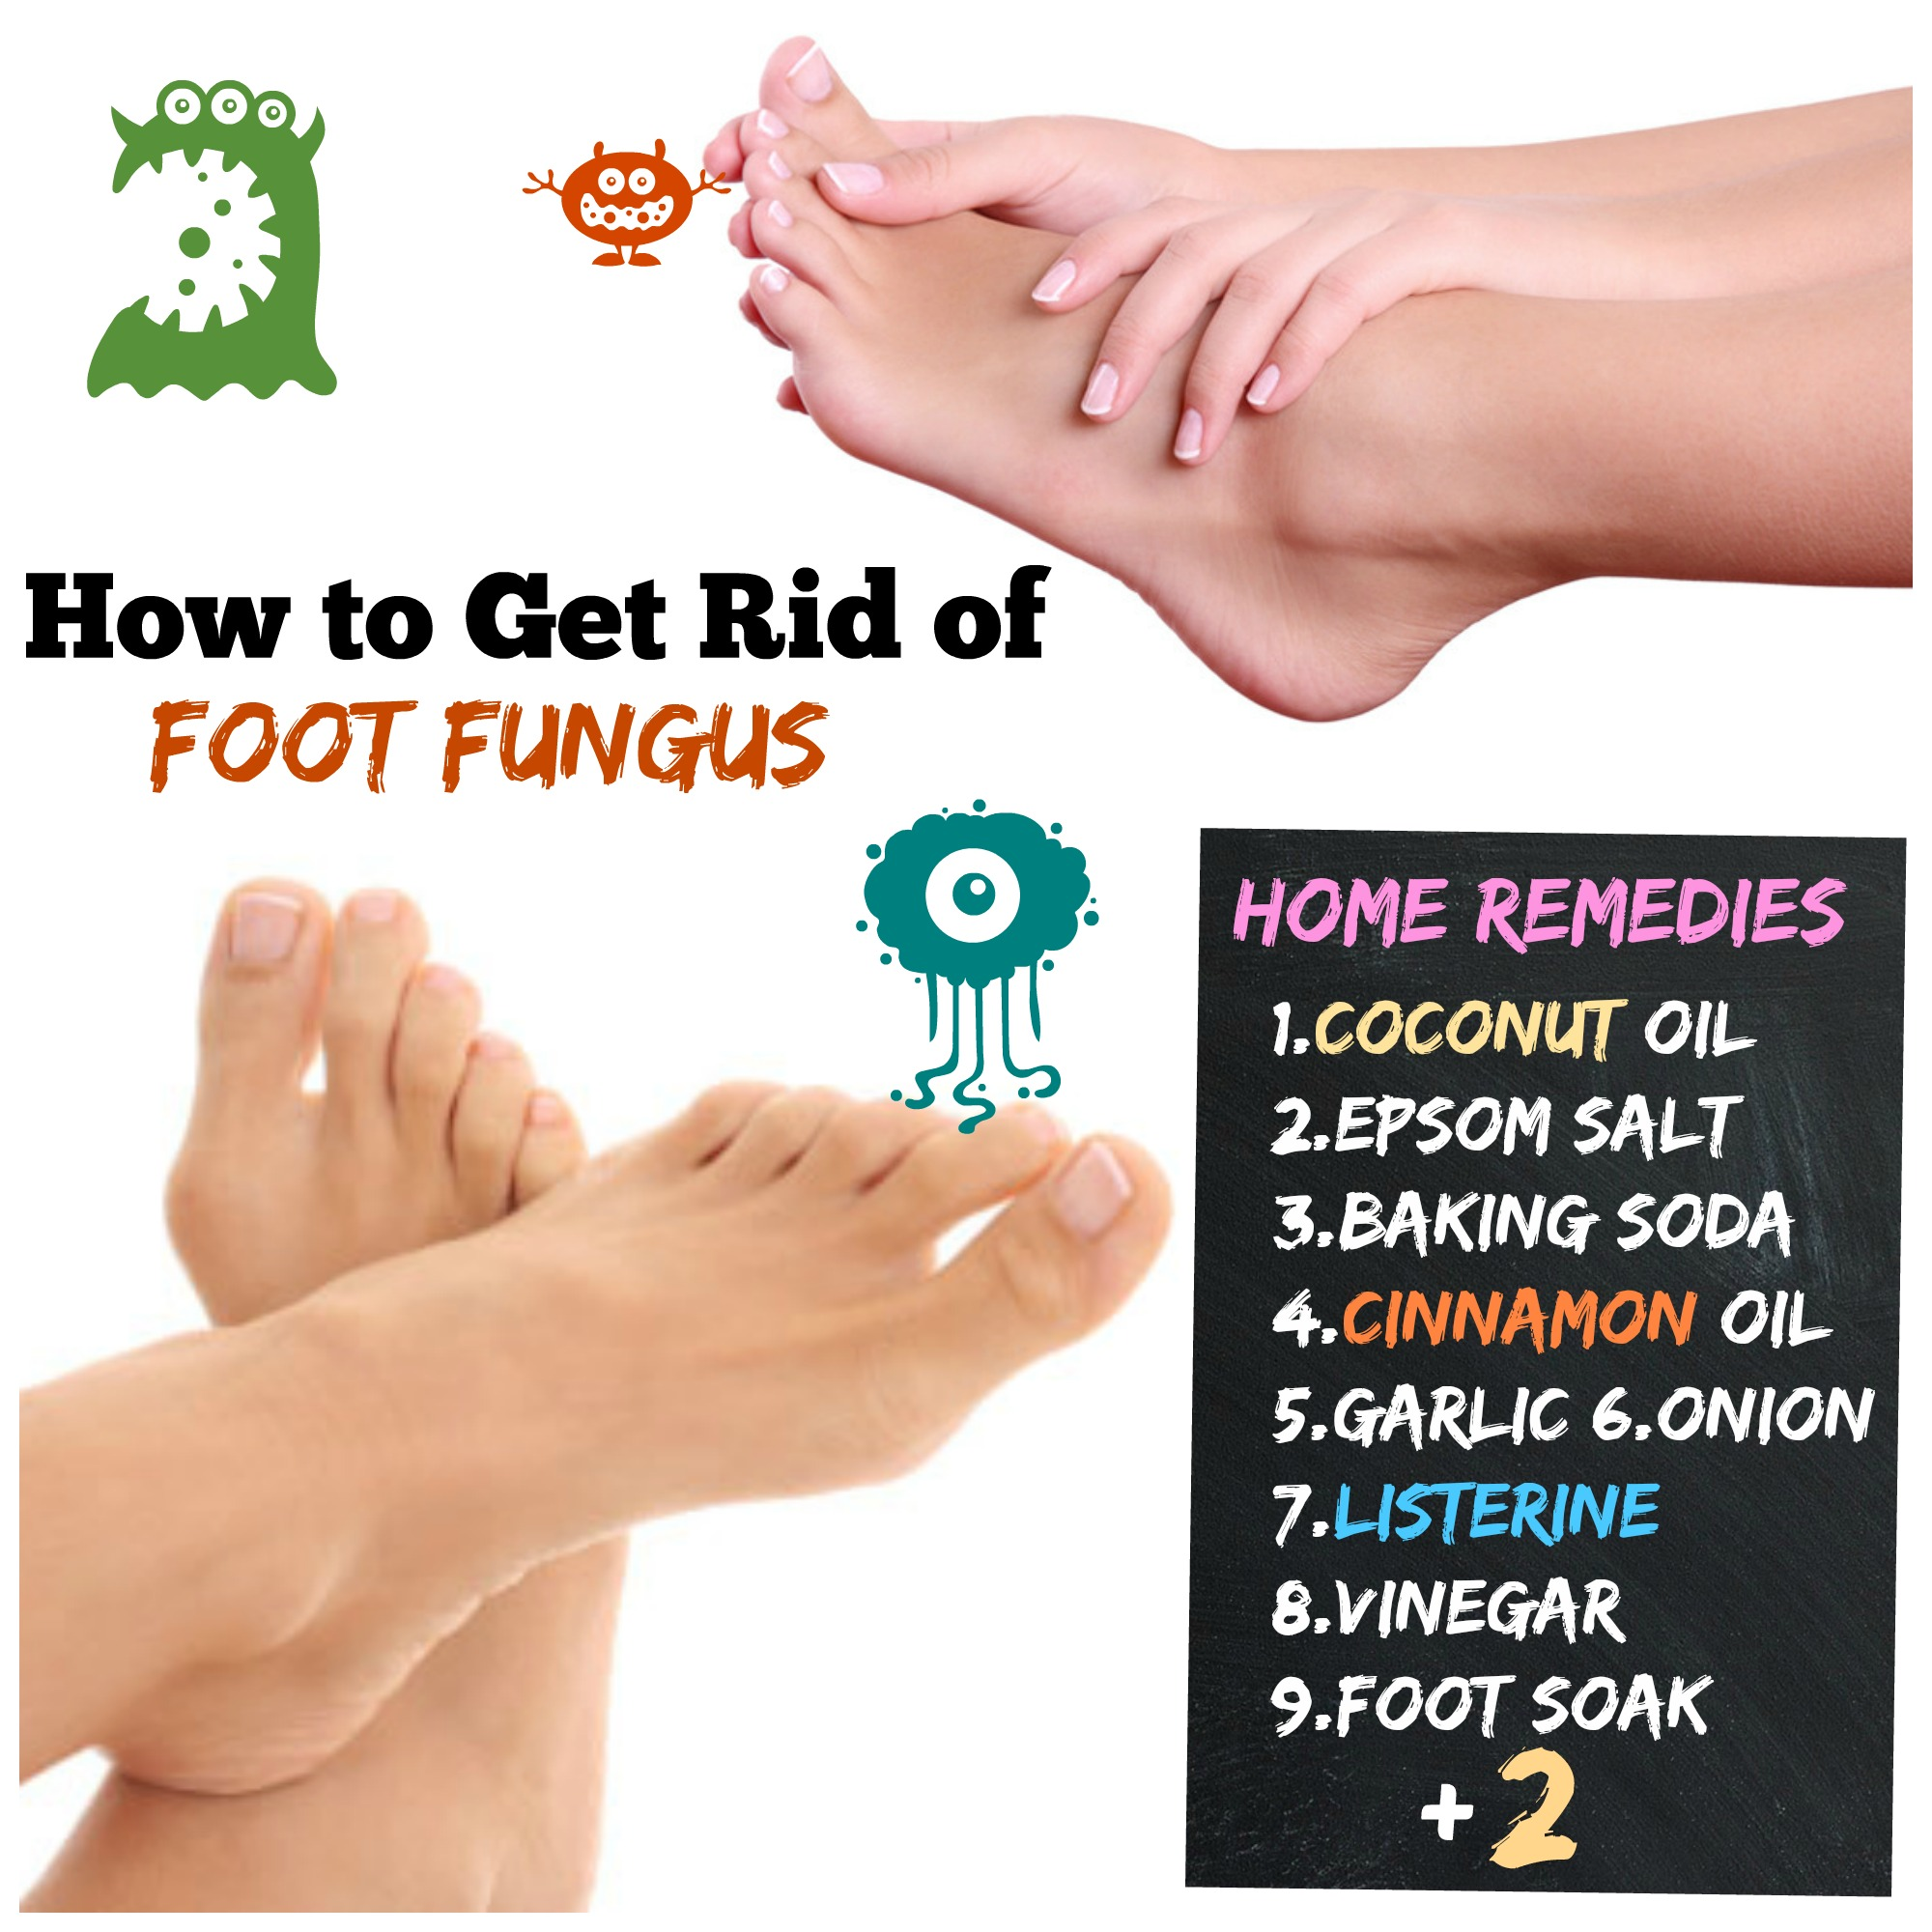 How to get rid of foot fungus home remedies for athletes foot